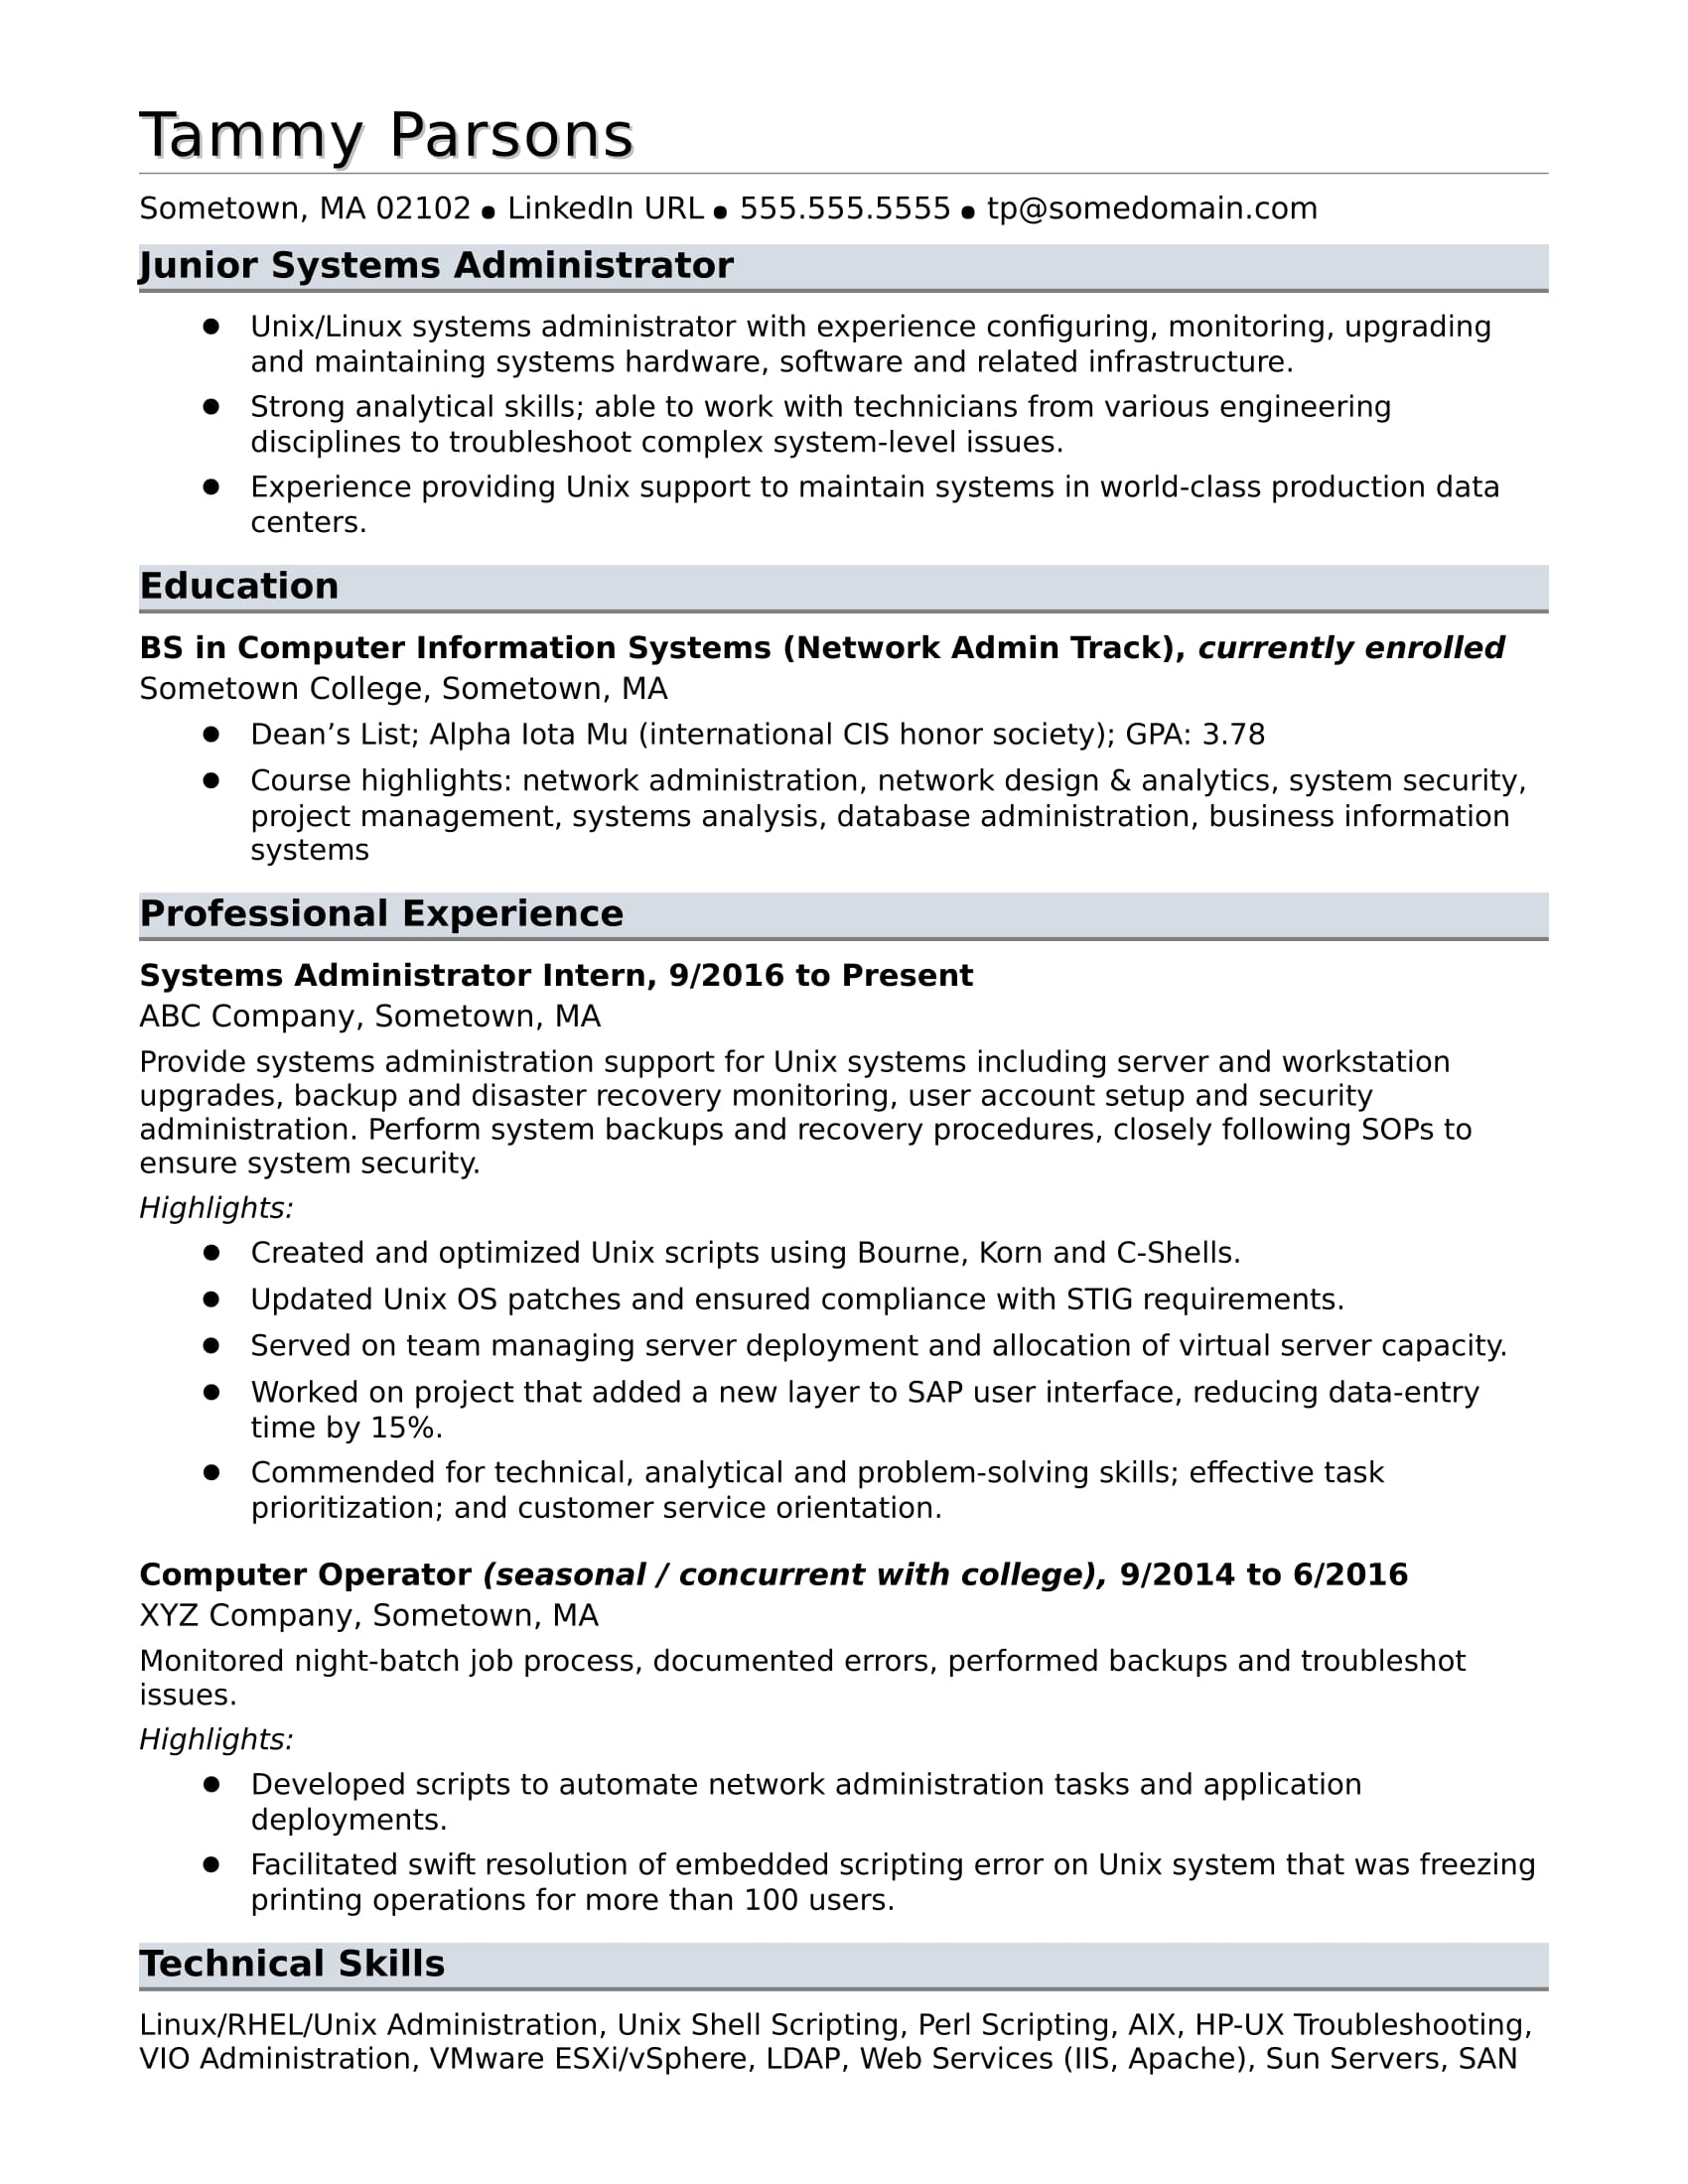 Sample Resume For An Entry Level Systems Administrator  Entry Level Job Resume